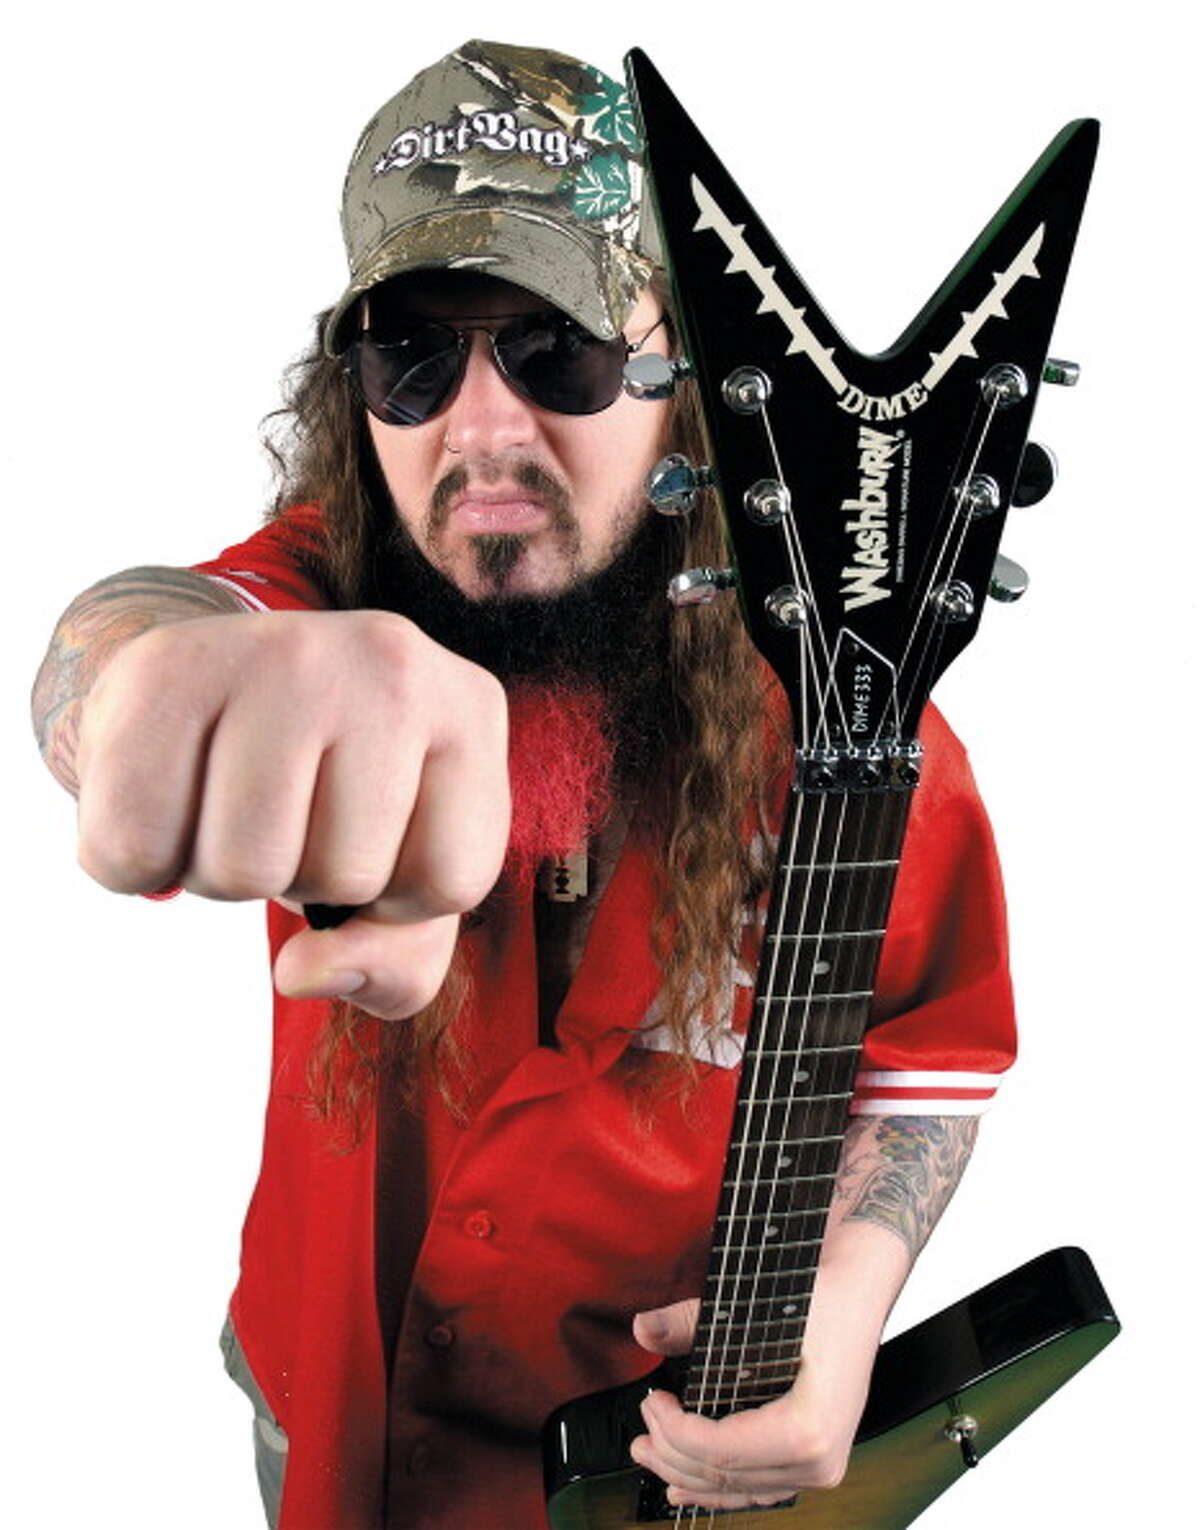 Dimebag Darrell Abbott The influential metal guitarist, who was shot and killed onstage in 2004, is buried at the Moore Memorial Gardens Cemetery in Arlington.